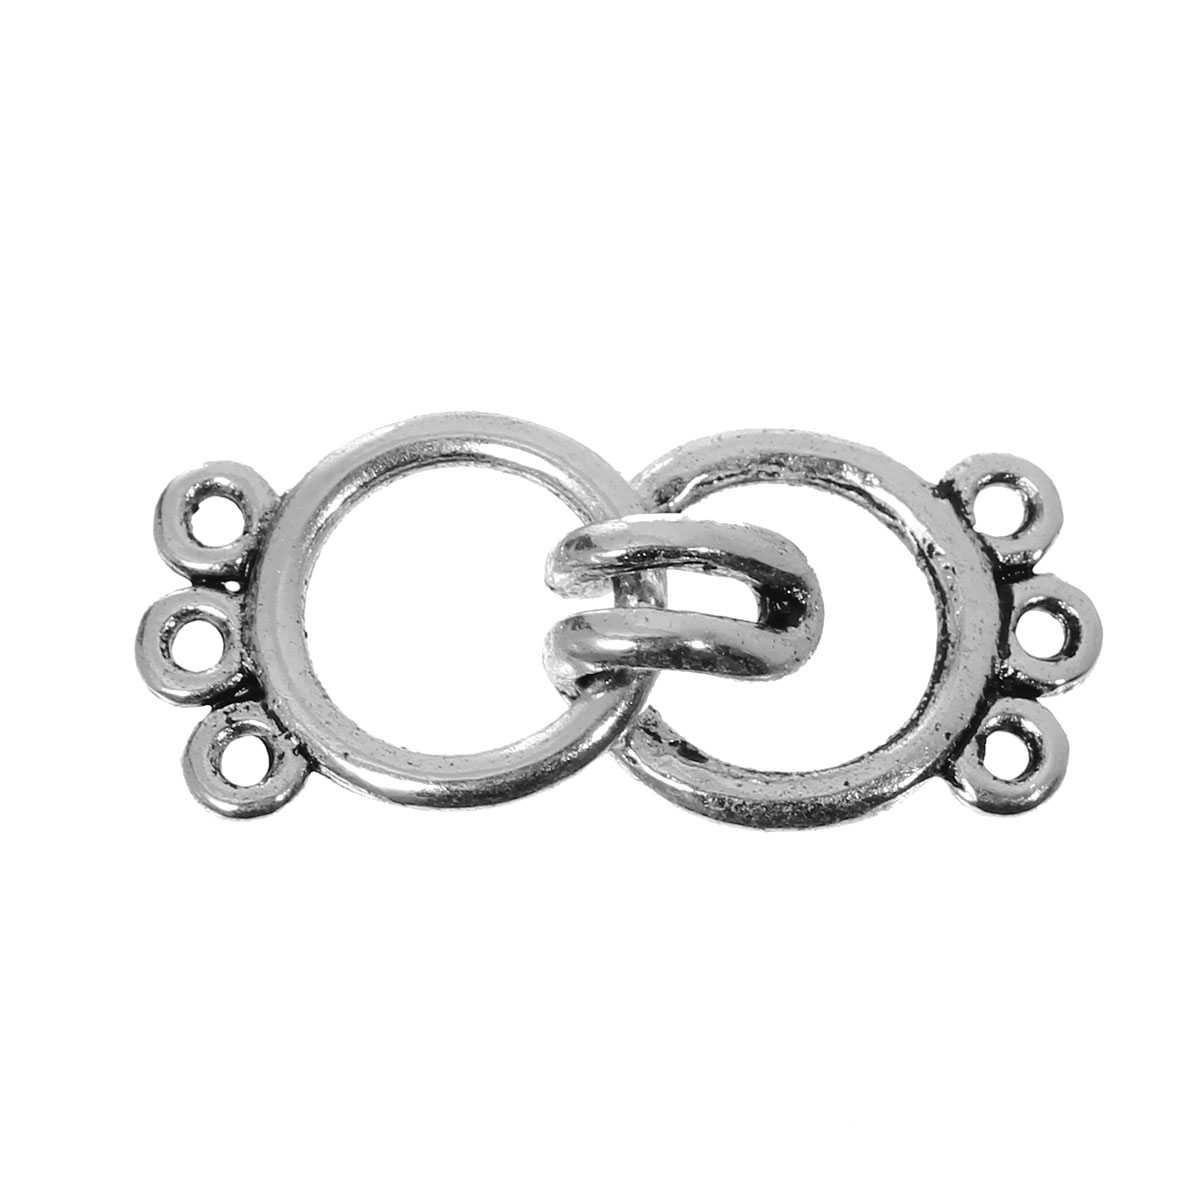 DoreenBeads Zinc Based Alloy Toggle Clasps Findings Round Antique Silver <font><b>3</b></font> Holes 15mm x11mm 14mm x11mm ,10 Sets 2016 new